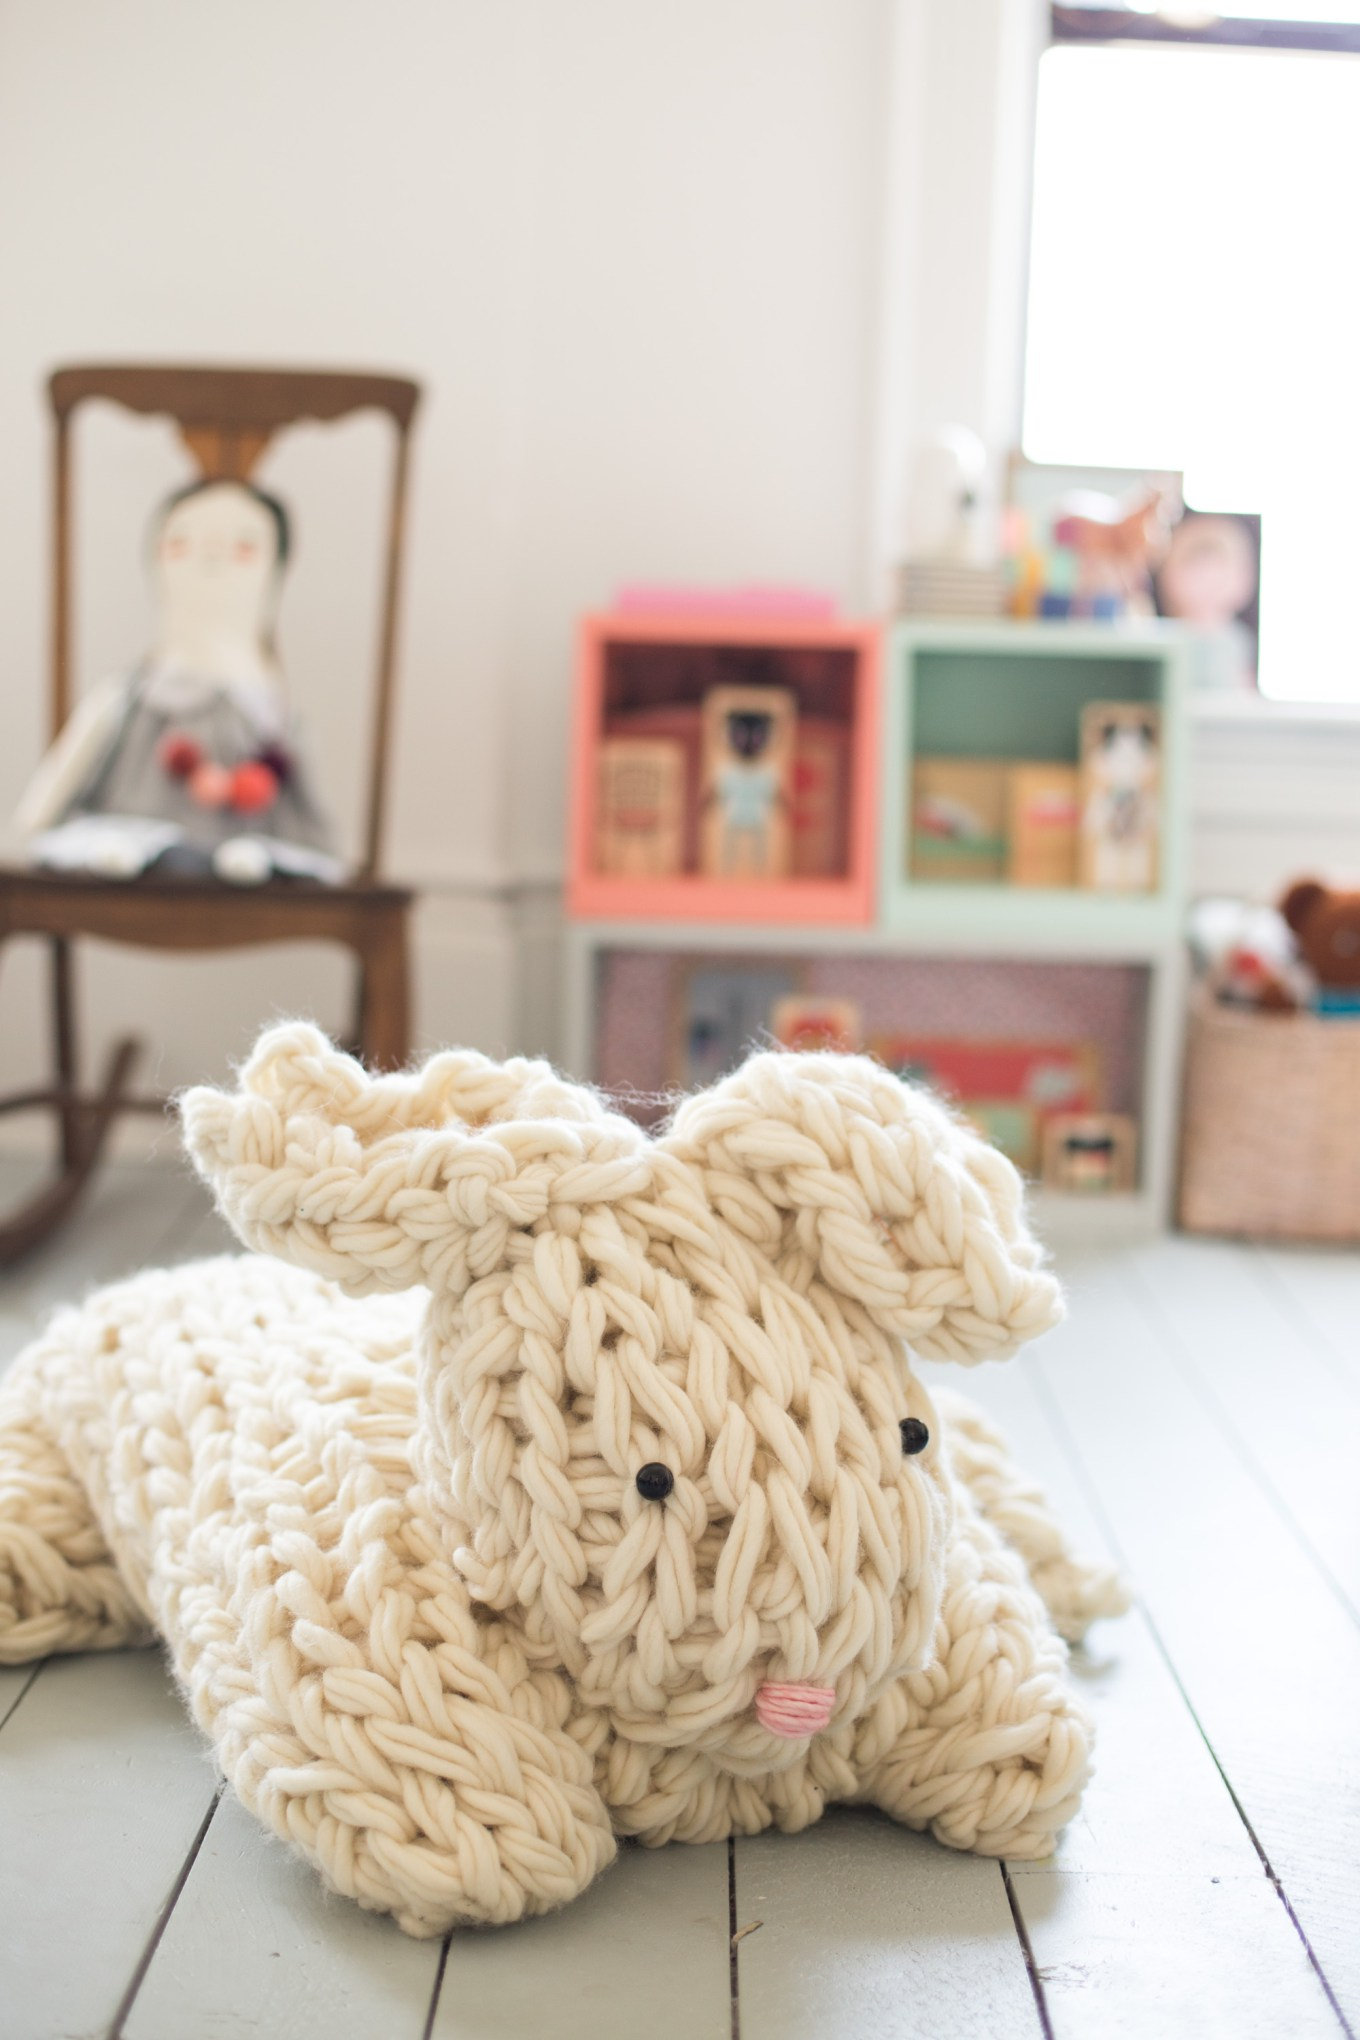 Knitting Without Needles Pdf : Giant arm knit bunny from flax and twine pattern